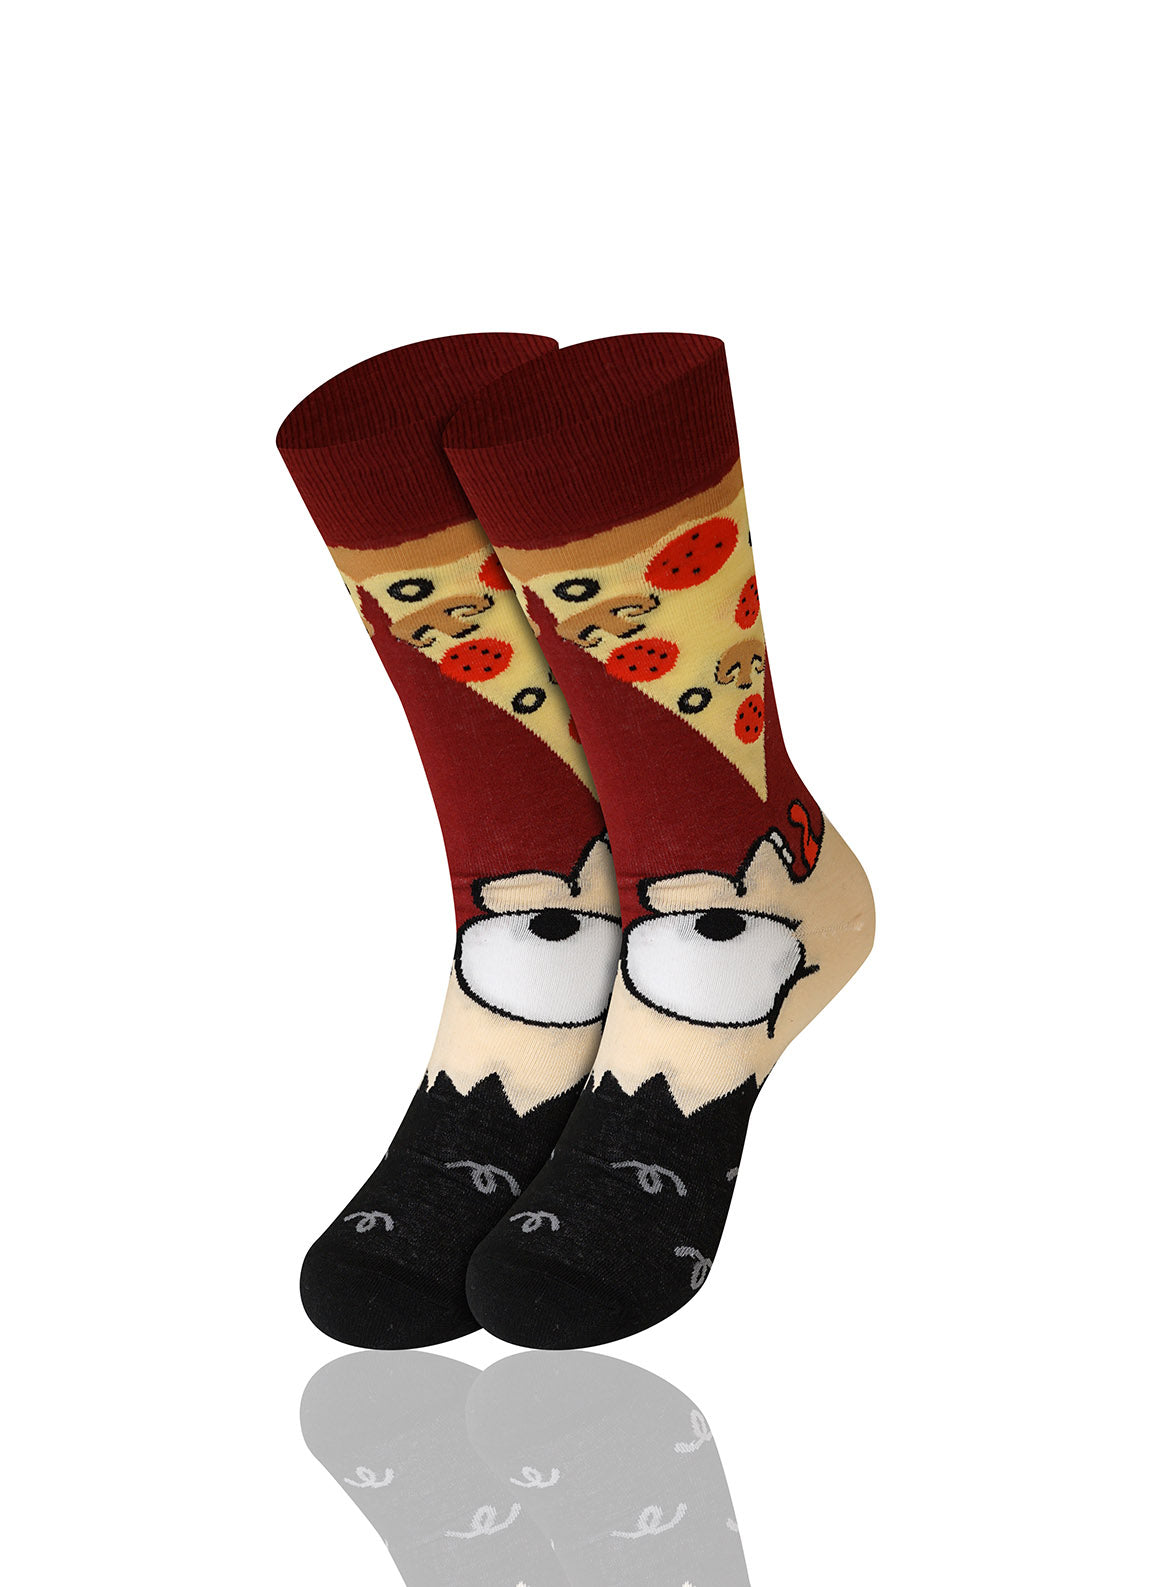 BLACK Man Eating Pizza Novelty Socks - URBANCREWS